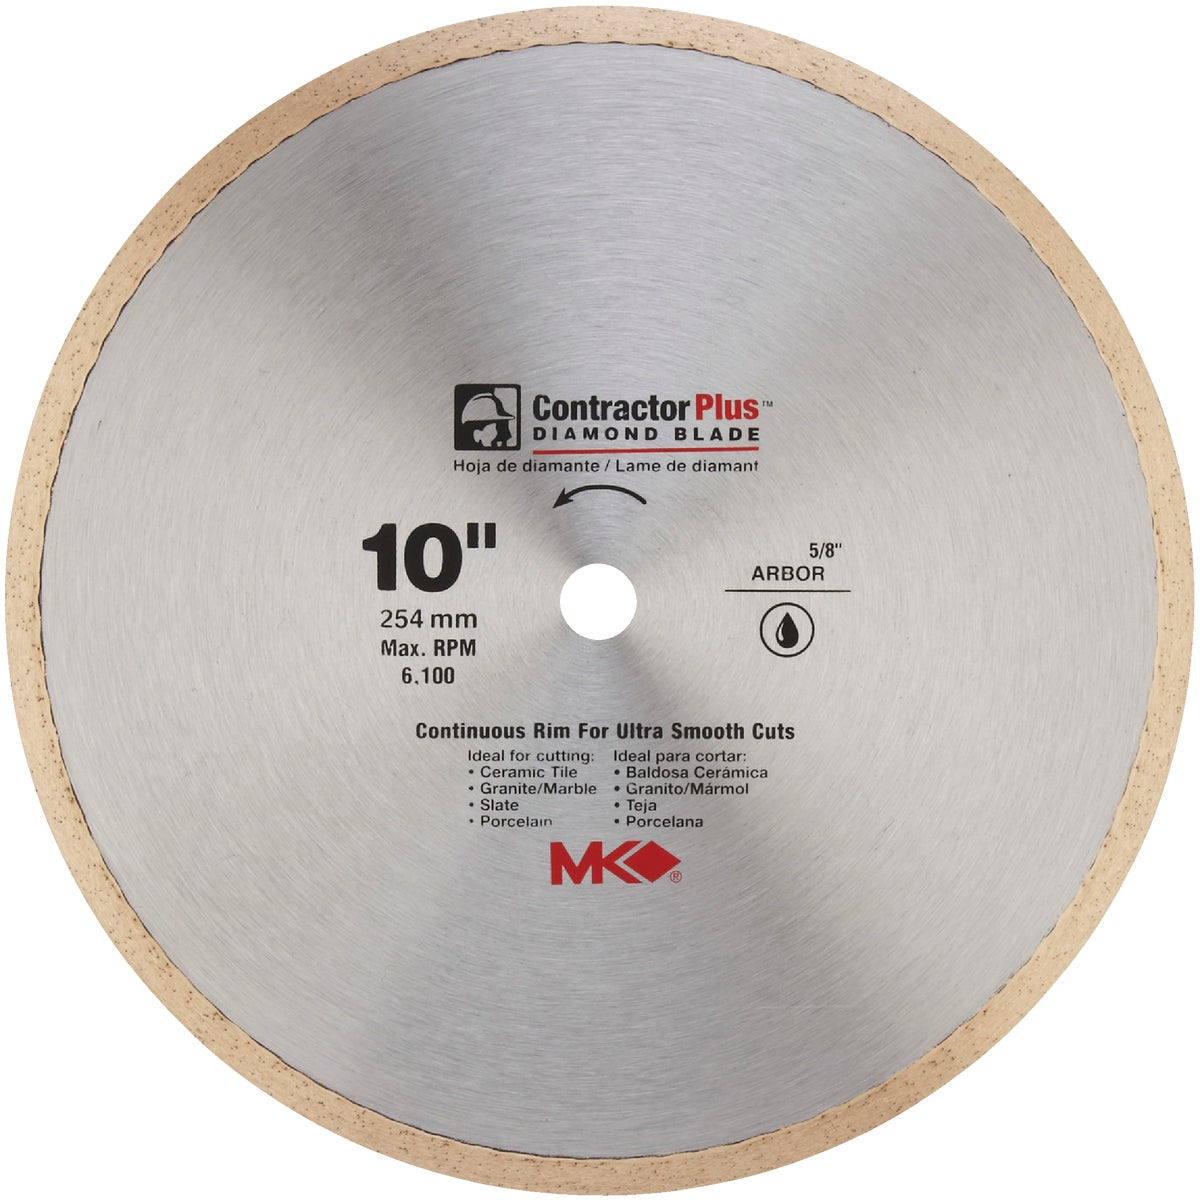 "10"" DIAMOND BLADE - 167010 by M K Diamond Products"